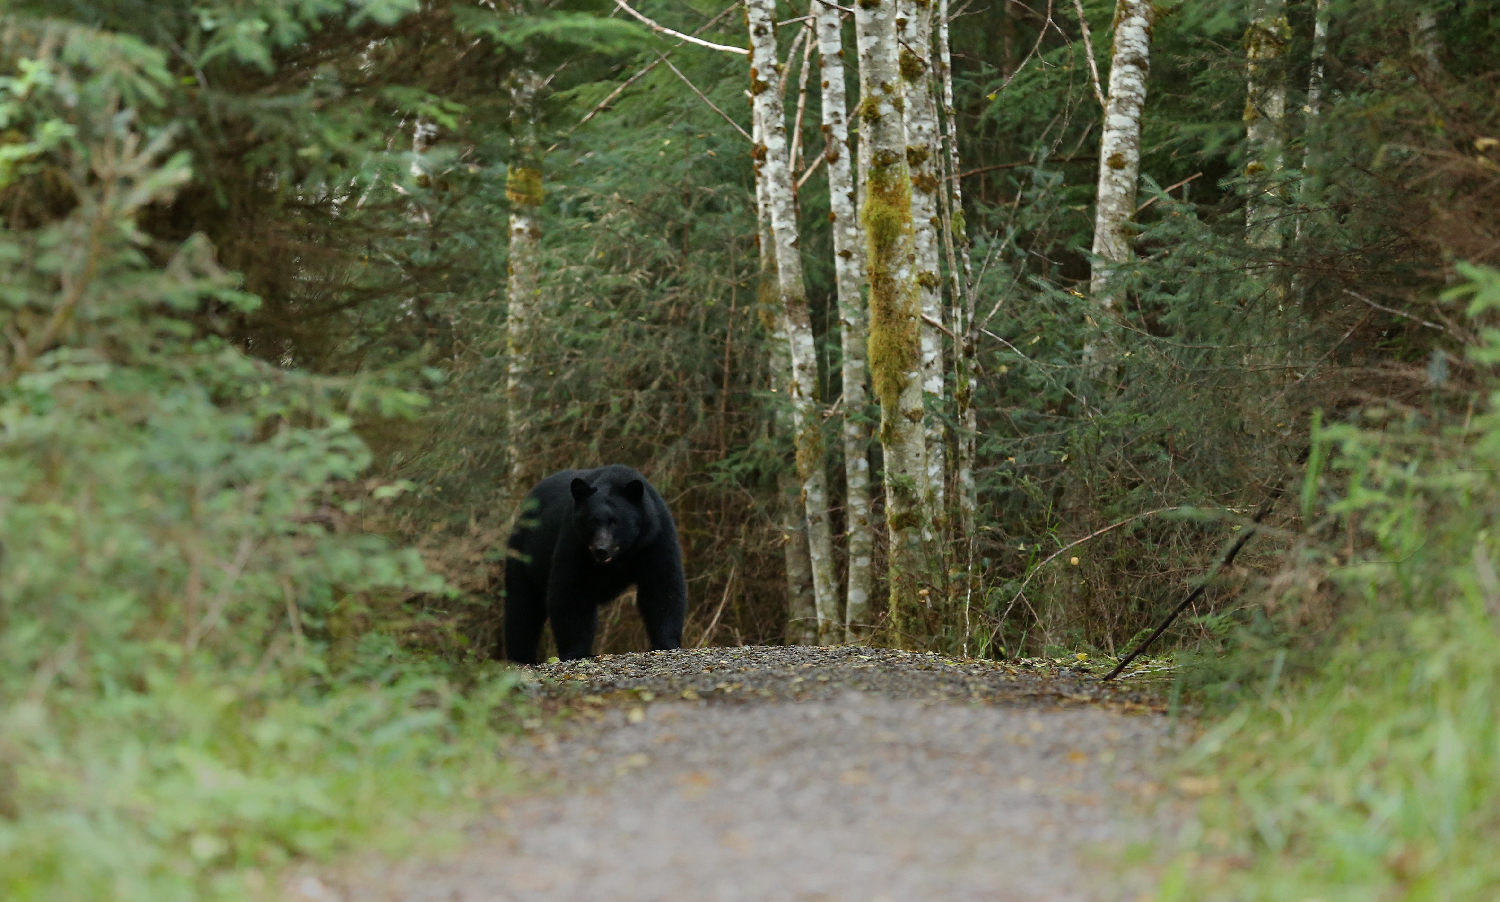 bear in path trail challenge black bear ursus americanus scary prince of wales island southeast alaska